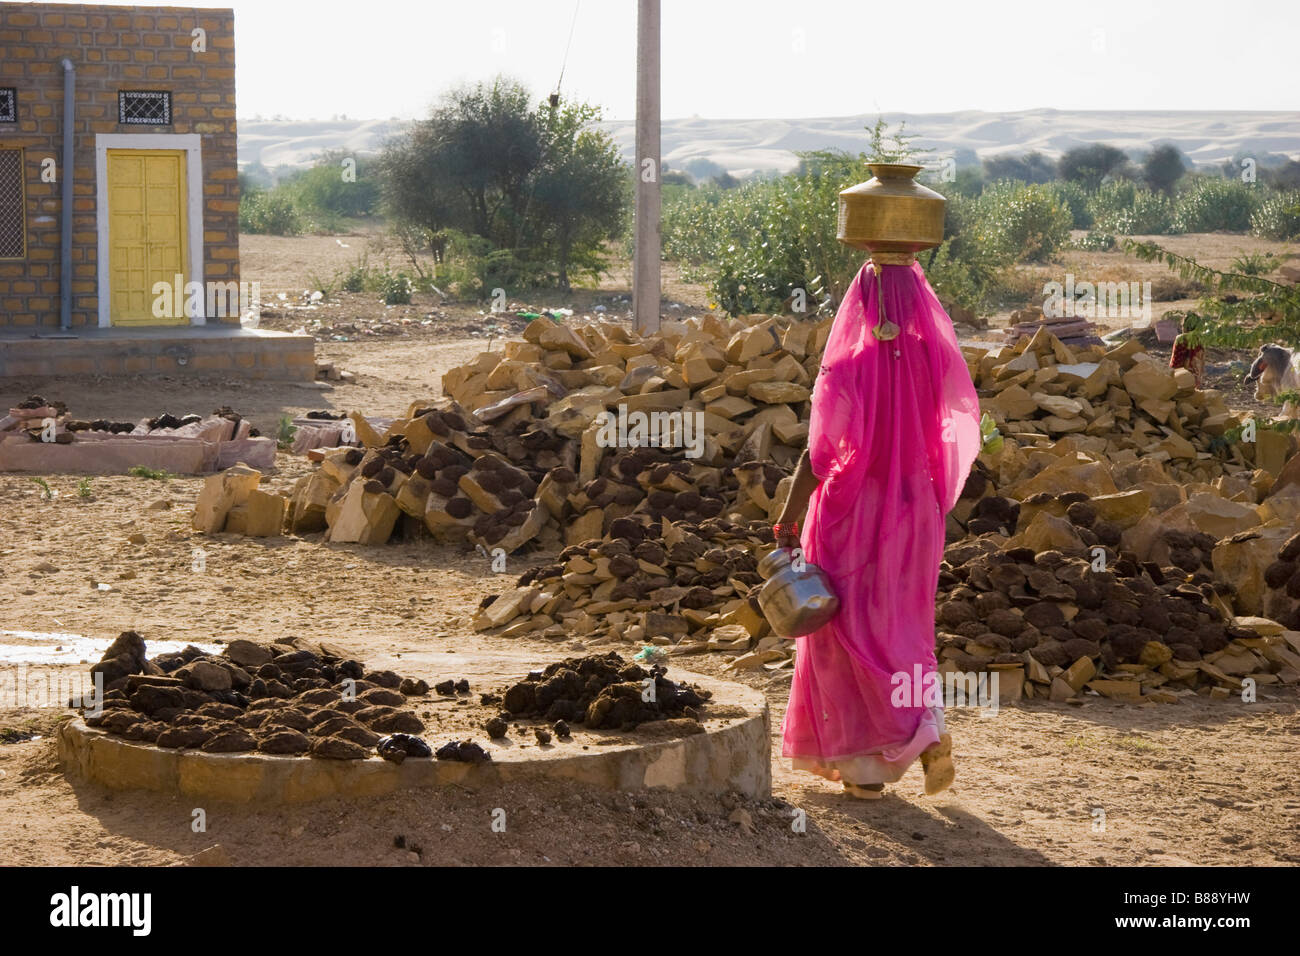 Indian woman carries water pot on head Khuri desert Rajasthan India - Stock Image